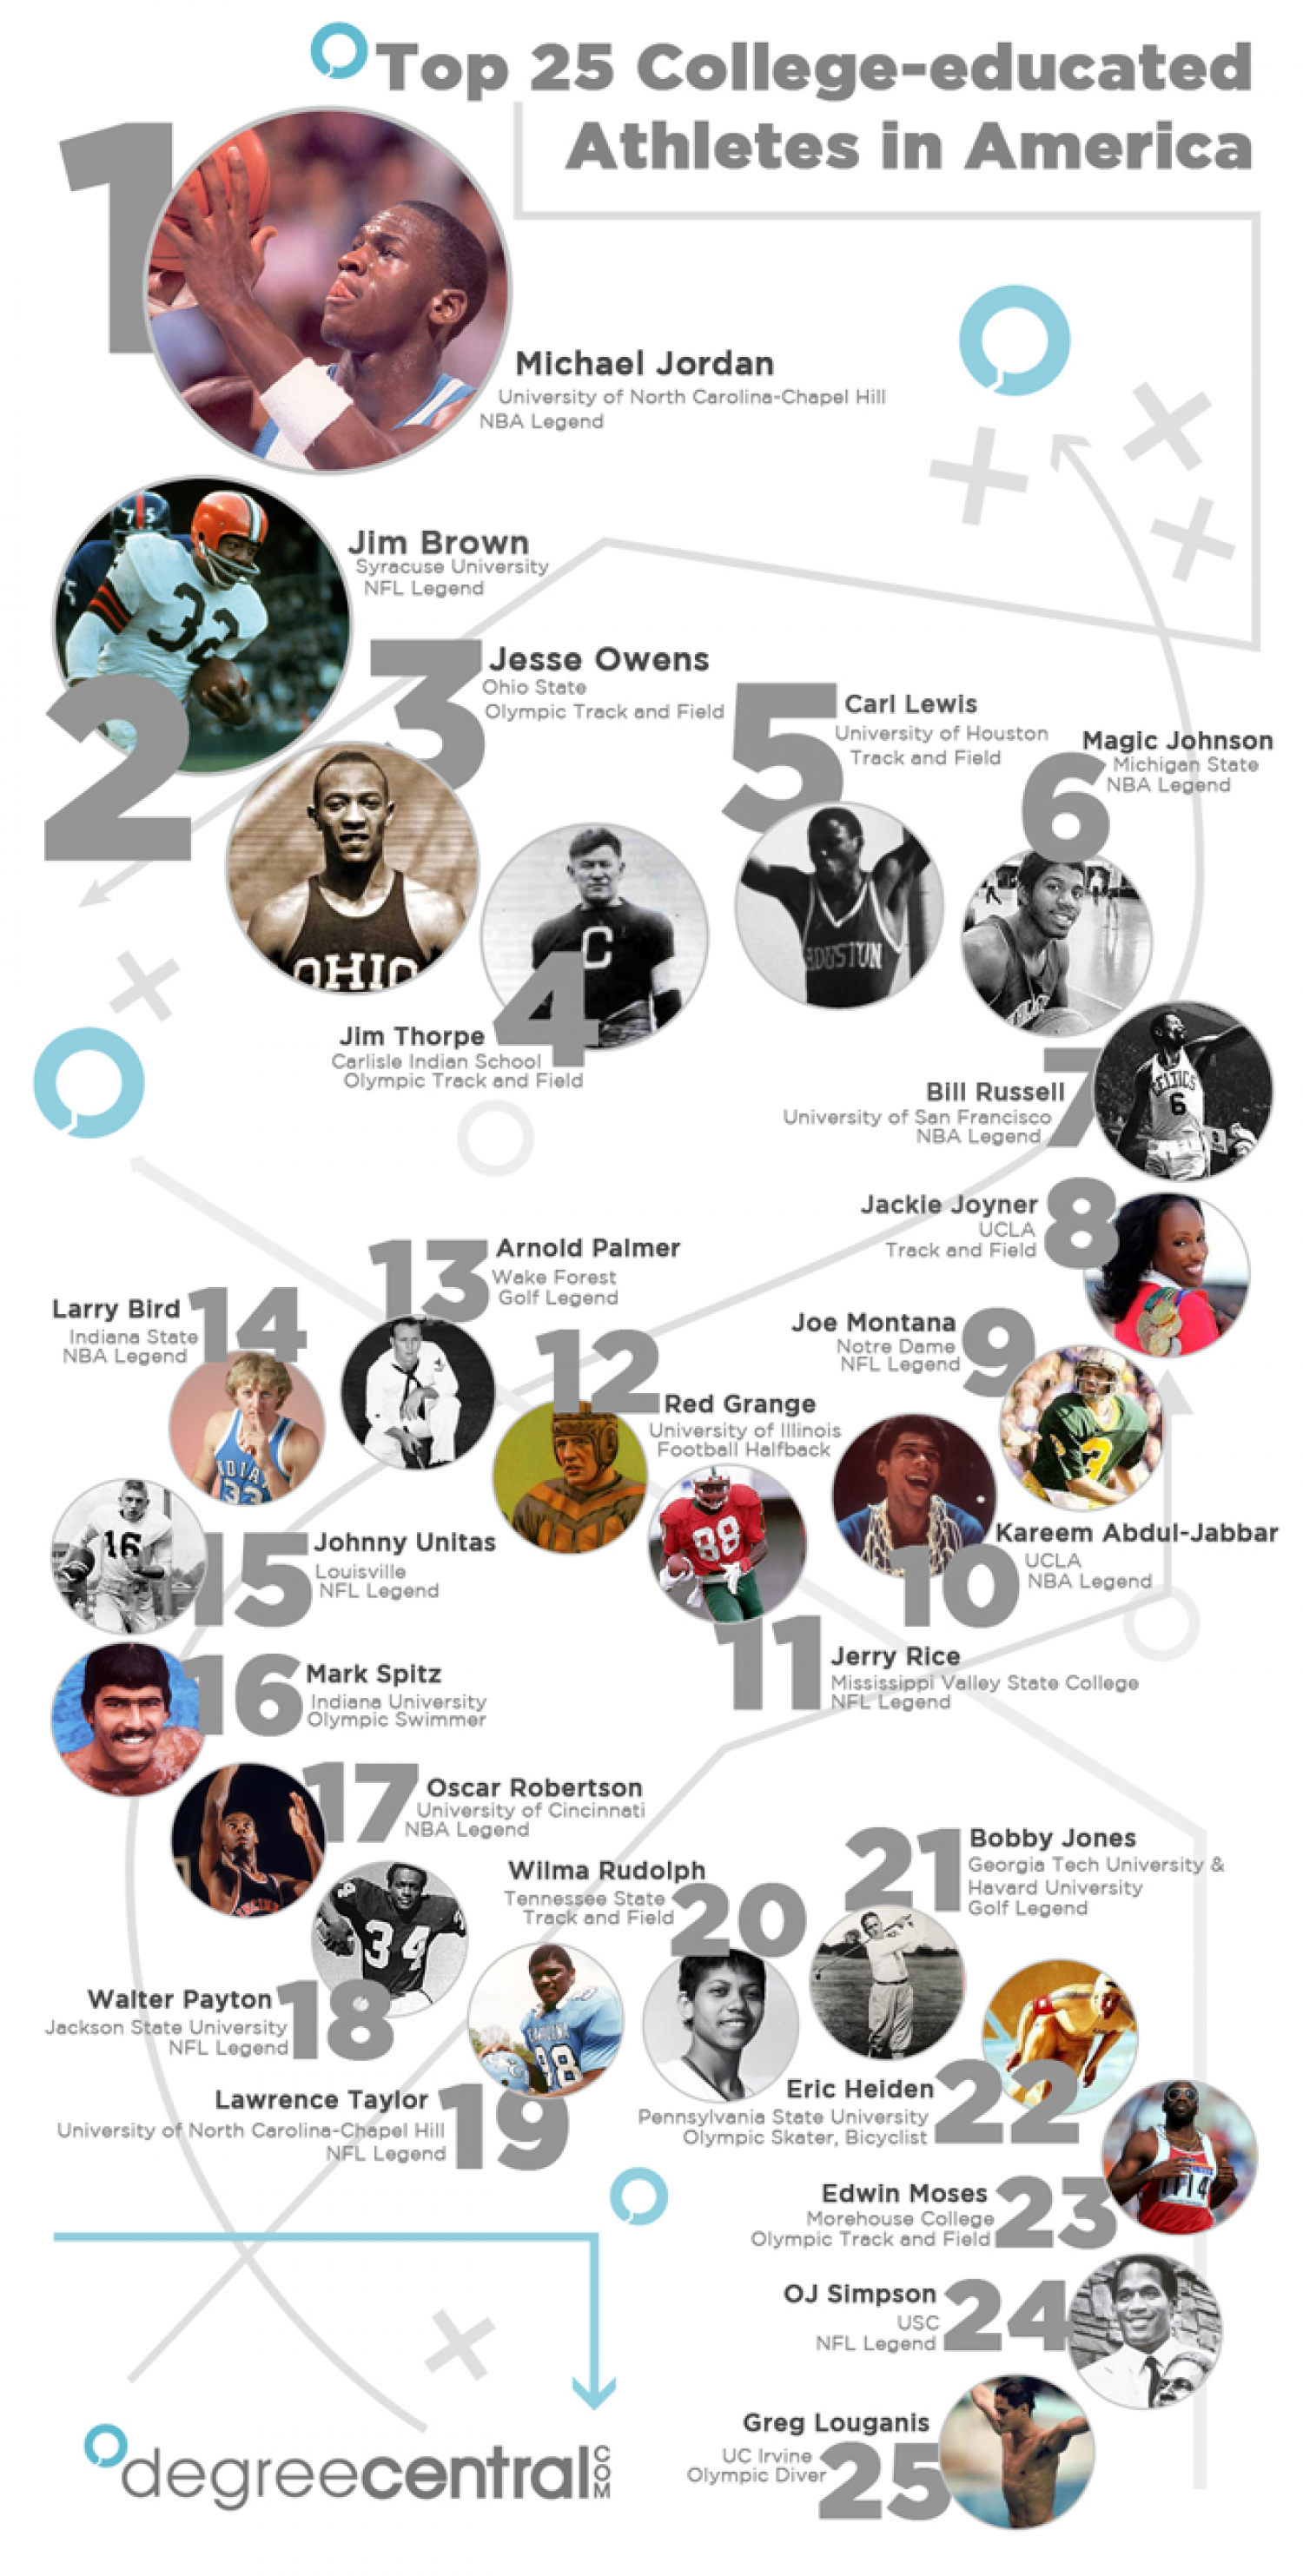 Top 25 College-Educated Athletes Infographic